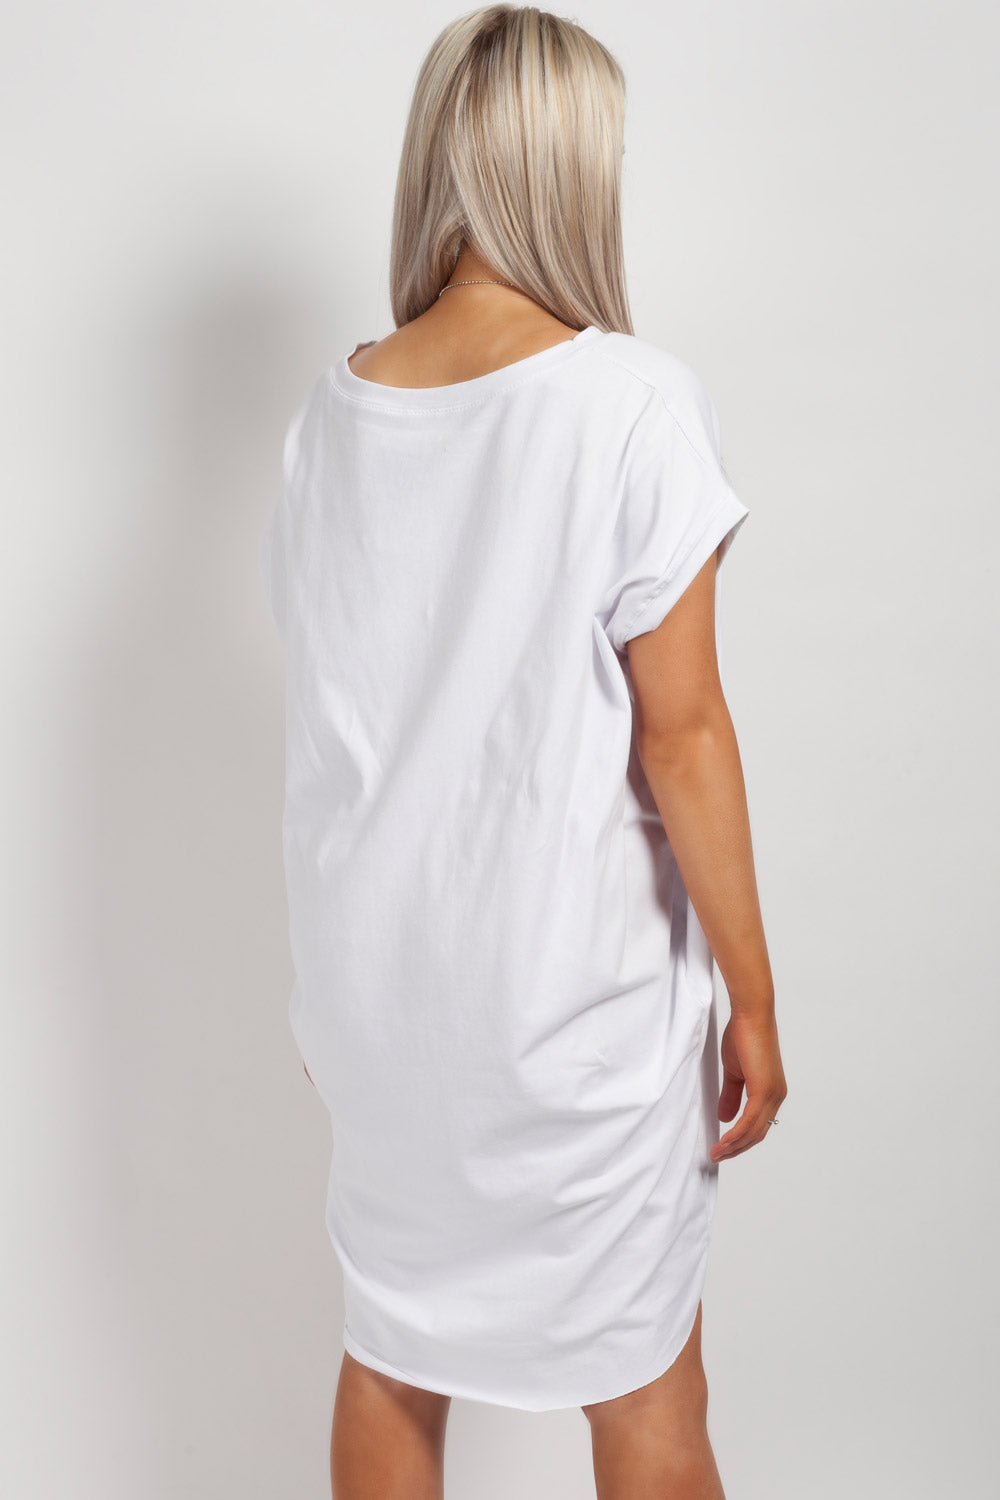 womens made in italy top white